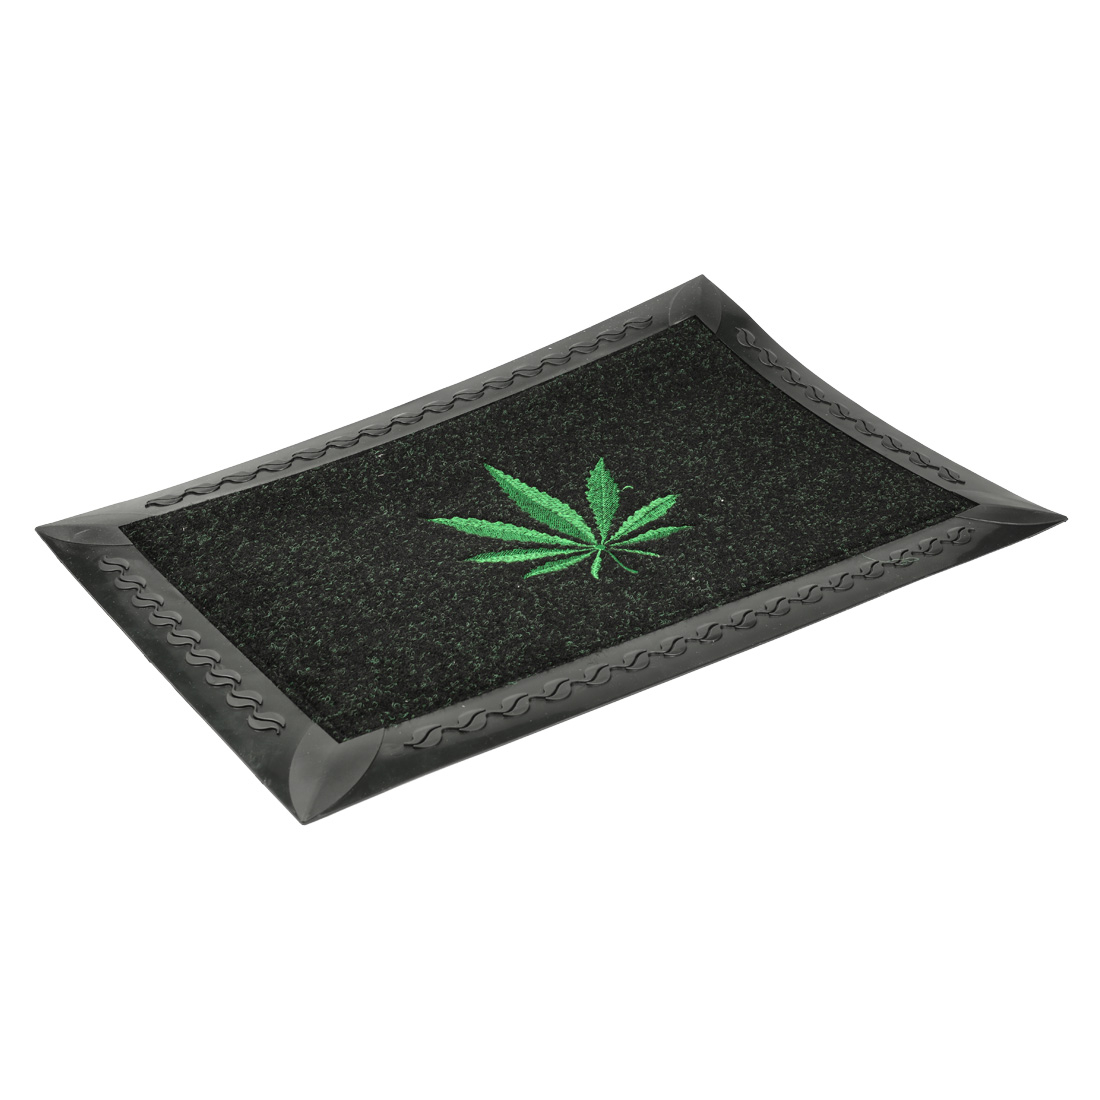 tapis de sol leaf disponible sur s factory. Black Bedroom Furniture Sets. Home Design Ideas